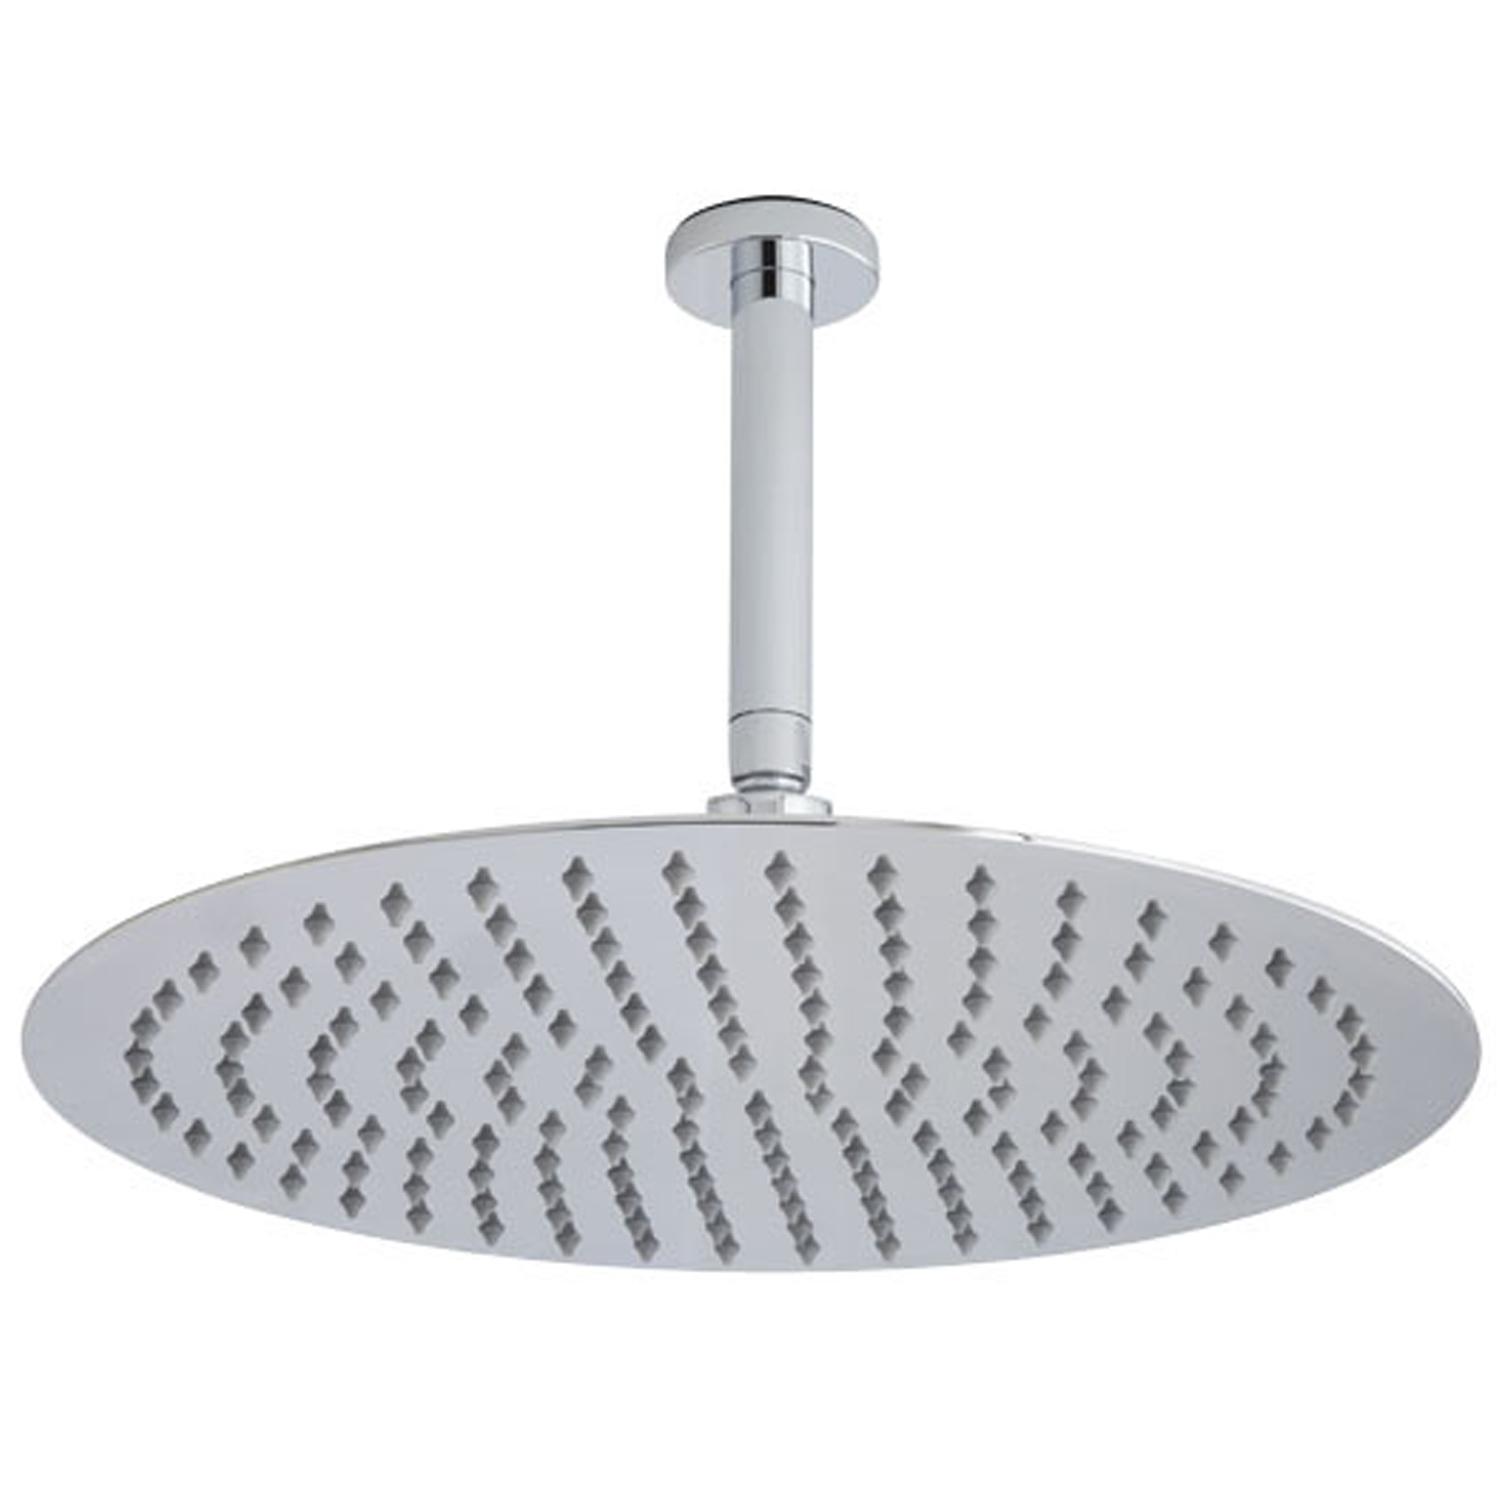 Hudson Reed Round Fixed Shower Head, 400mm Diameter, Stainless Steel